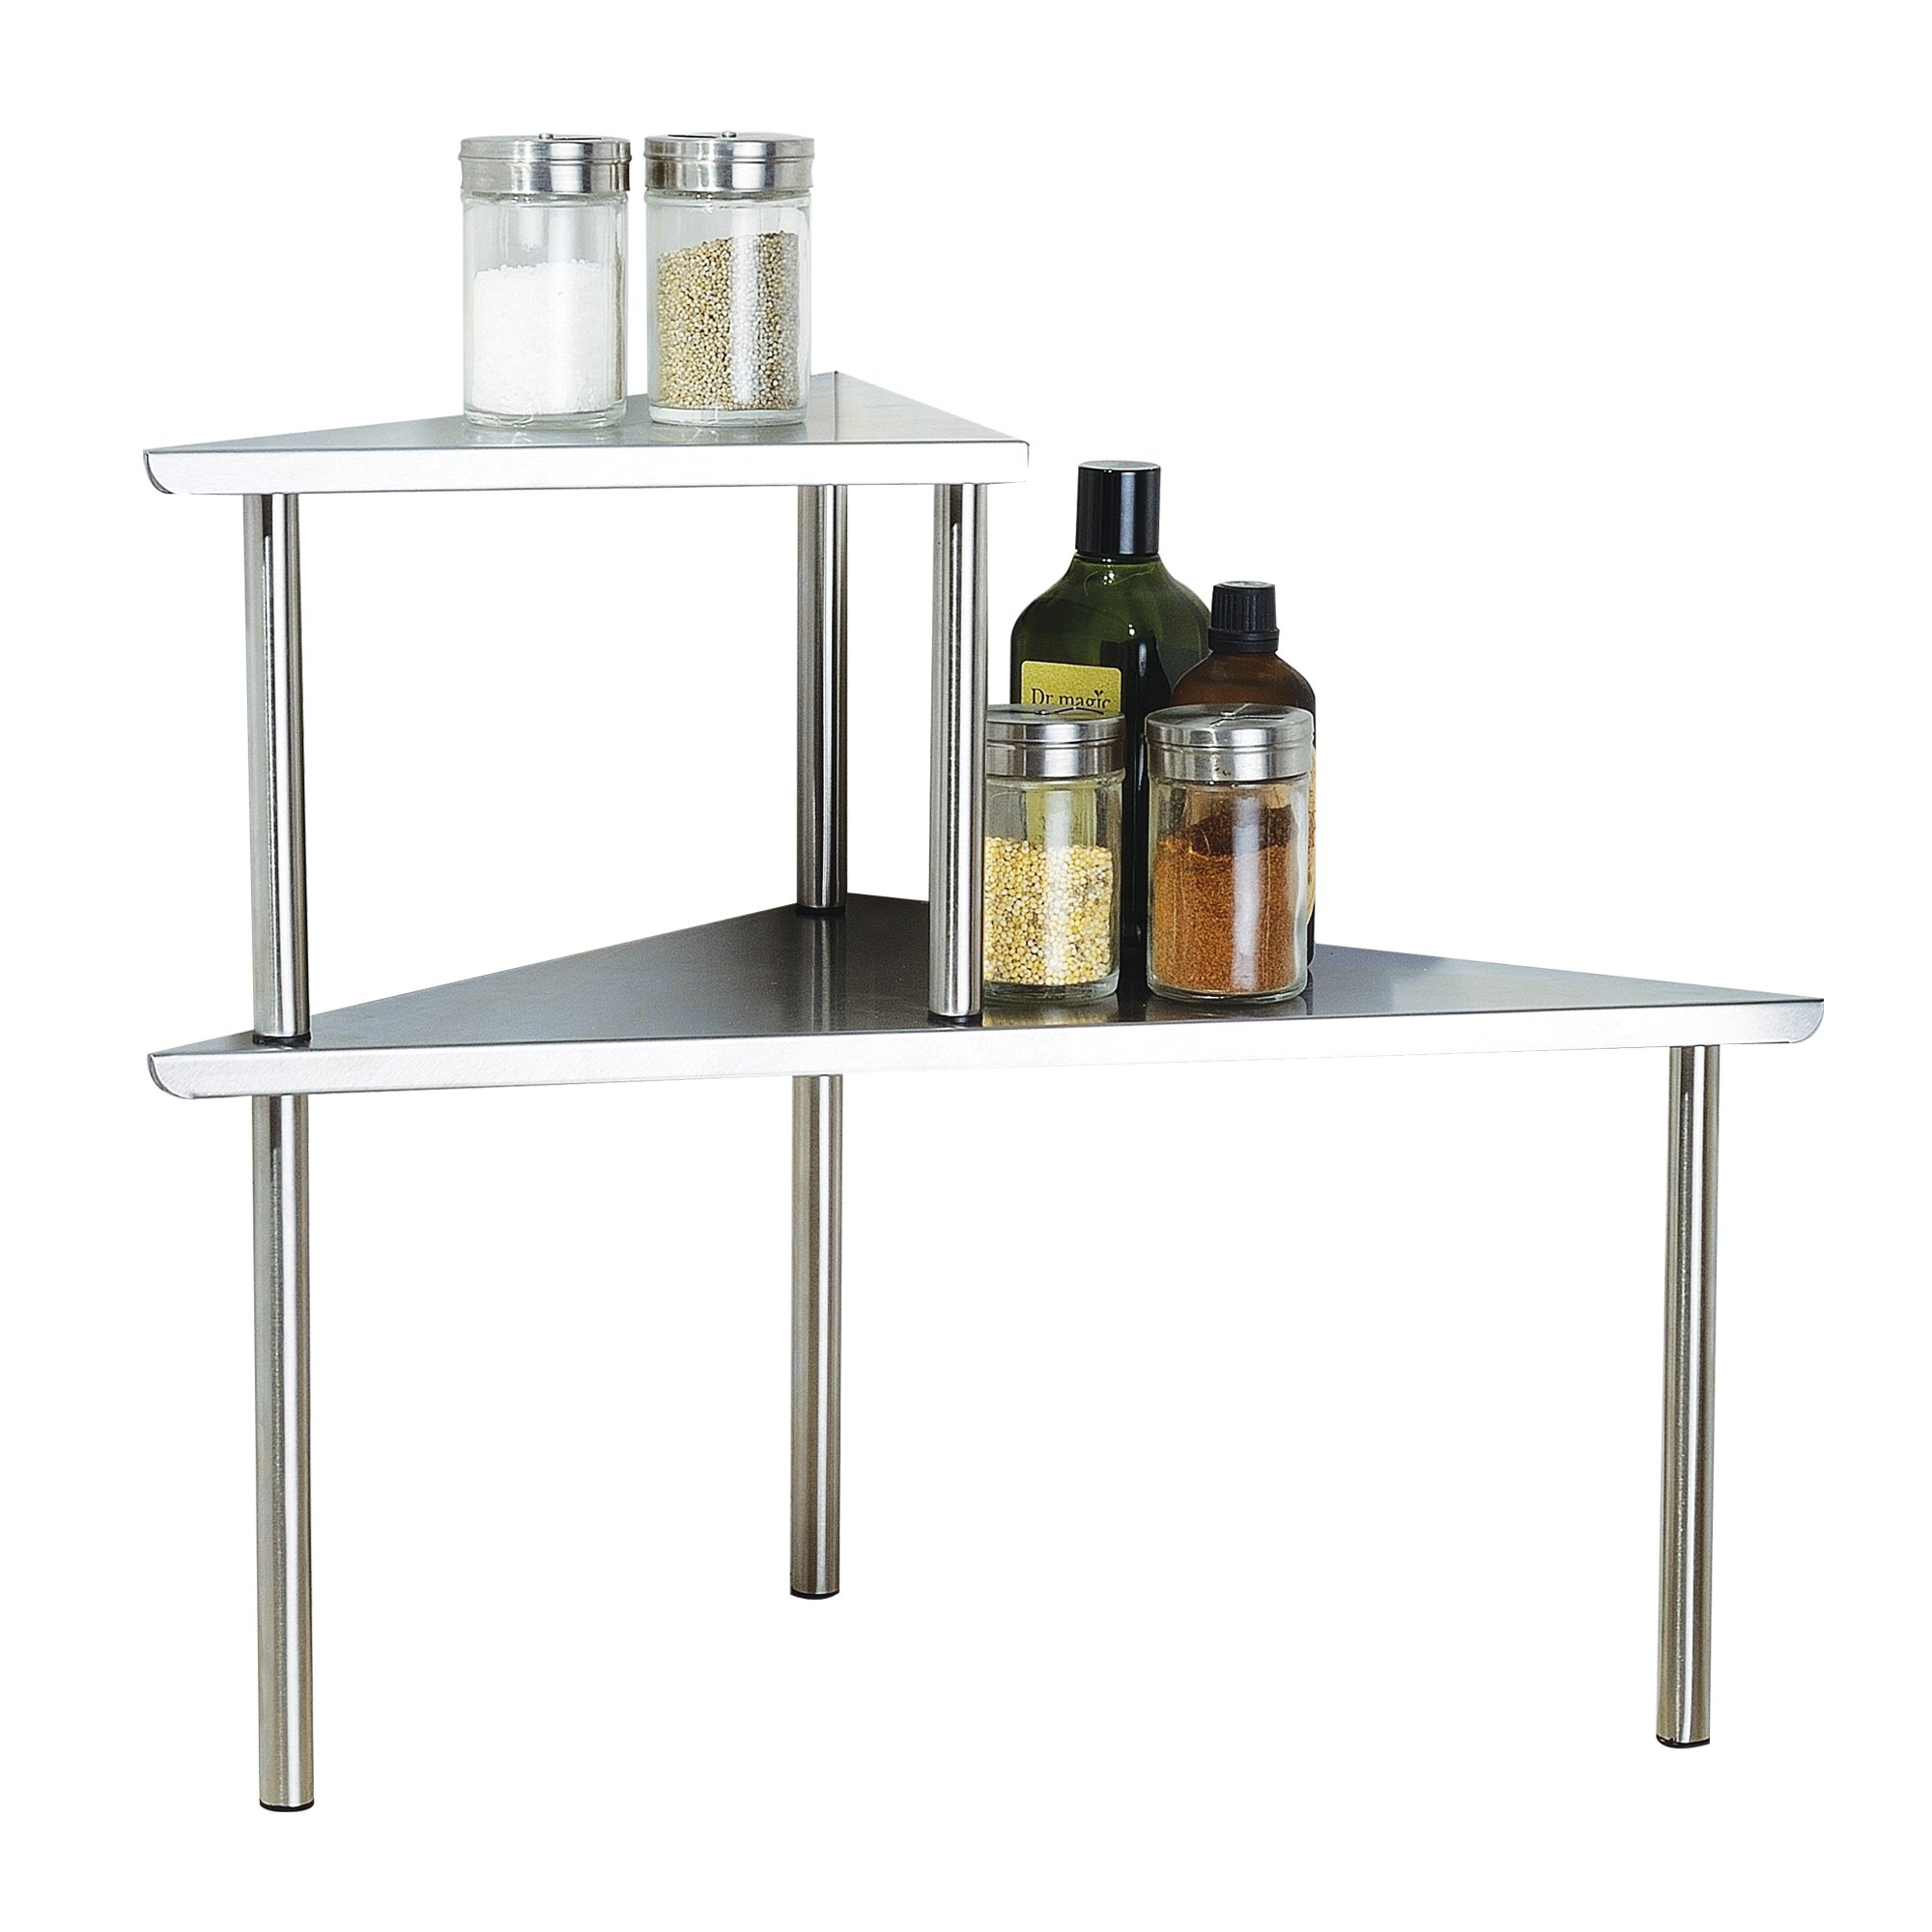 Cook N Home 2-Tier Stainless Steel Corner Storage Shelf Organizer, Triangle by Cook N Home